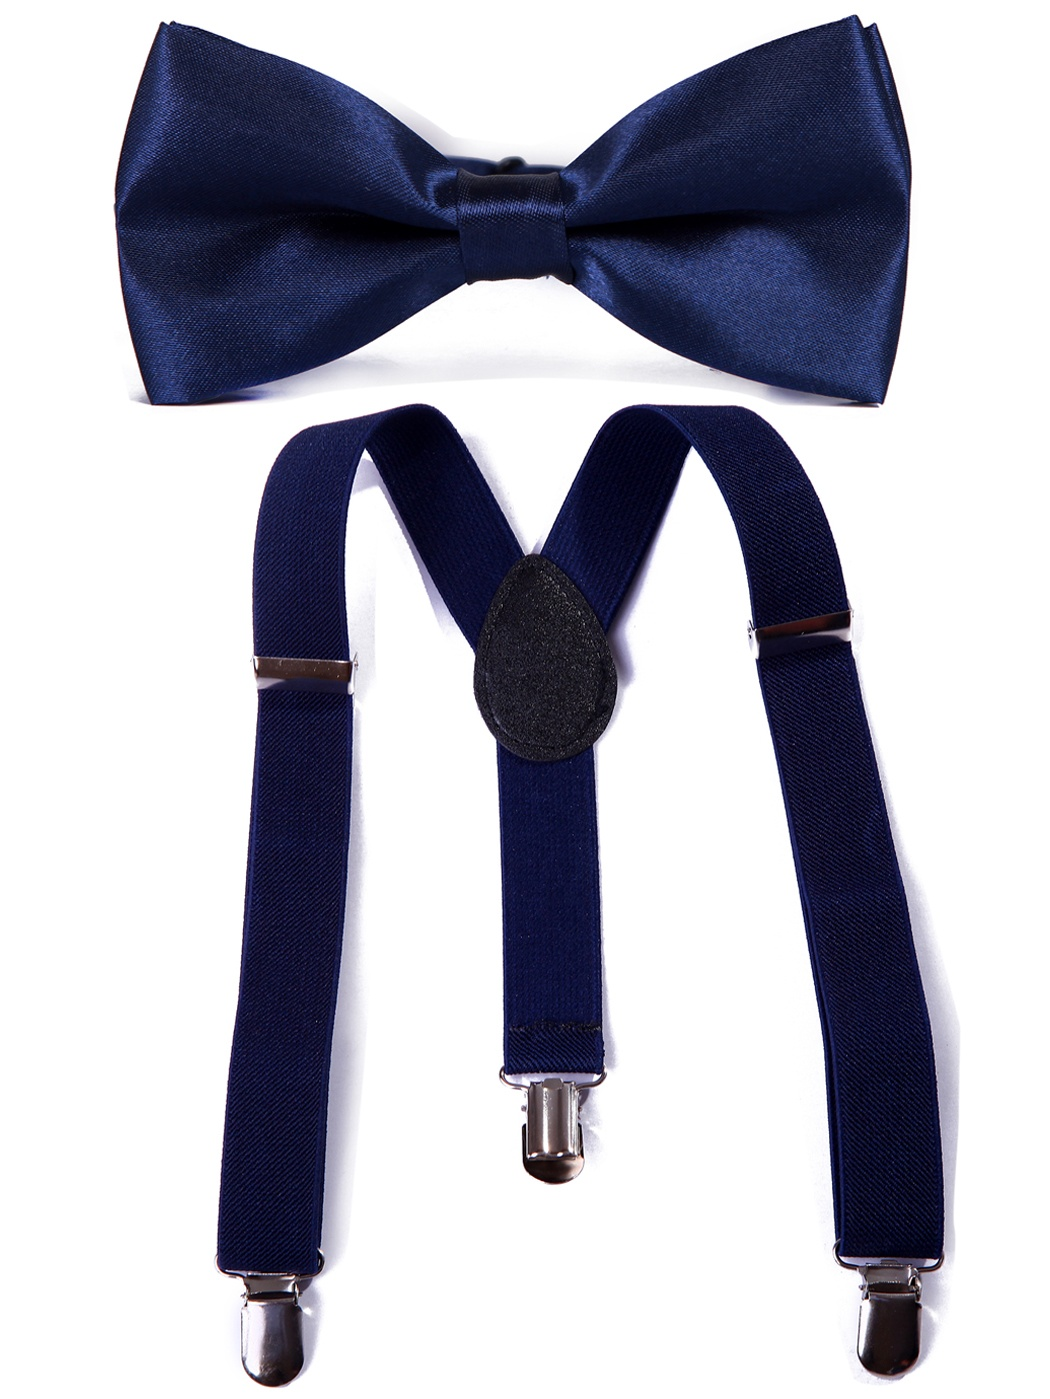 HDE Kid Boys Adjustable Y Back Clip Suspenders Matching Pre Tied Bowtie Set (Navy)